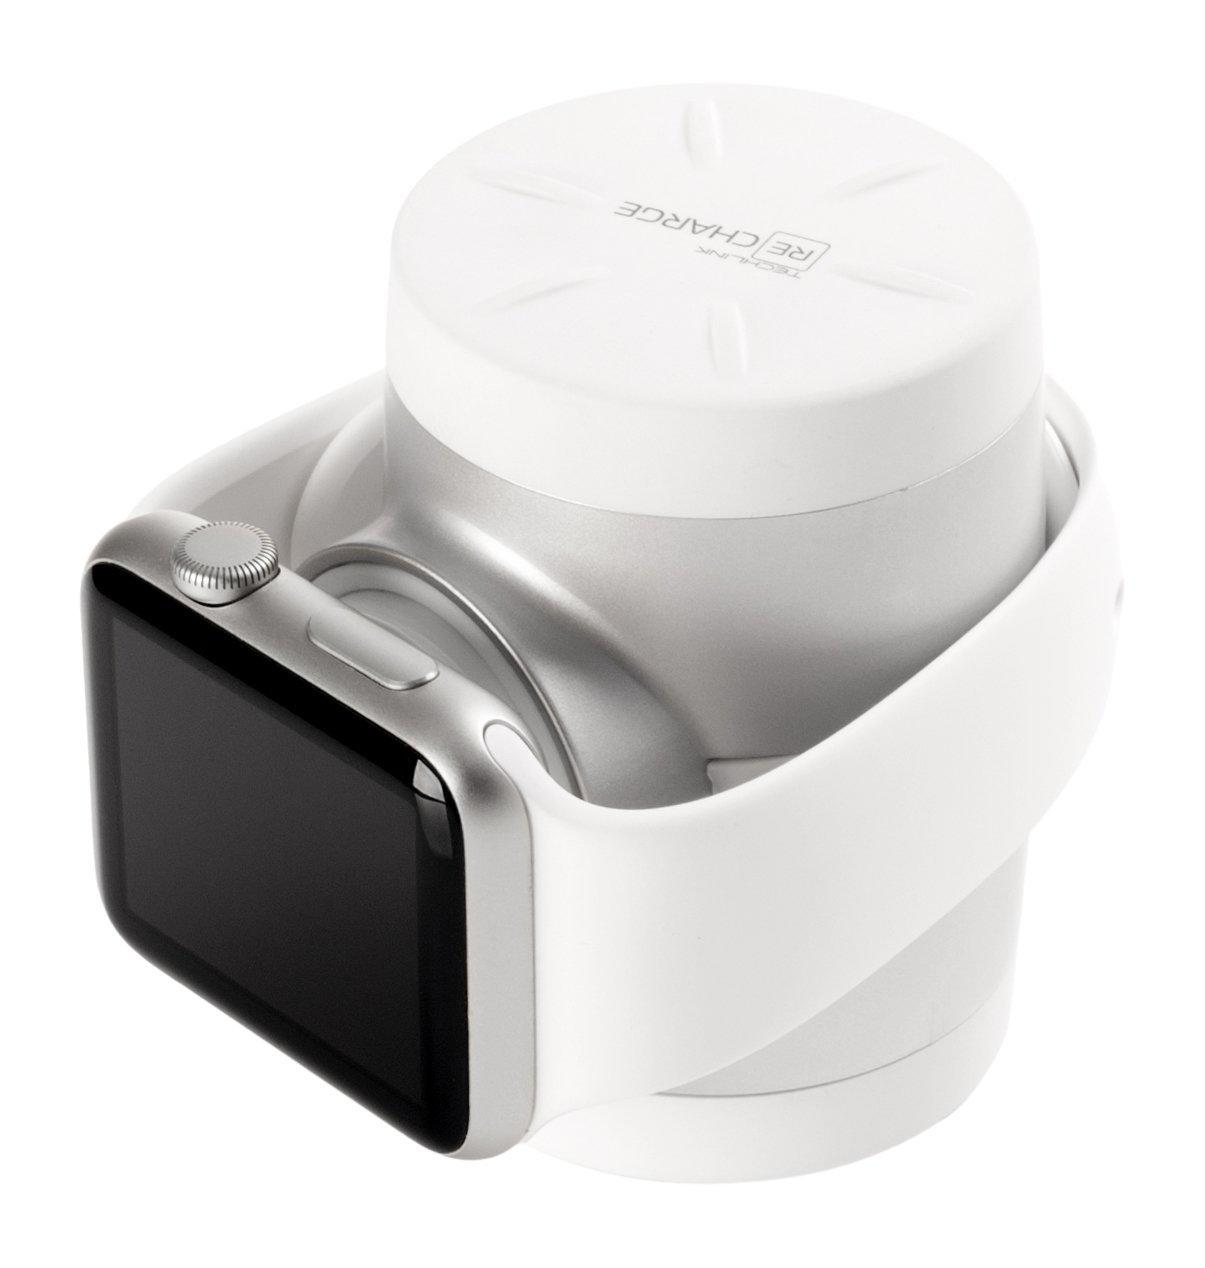 Techlink Recharge Apple Watch Power & Travel Case - White/Silver